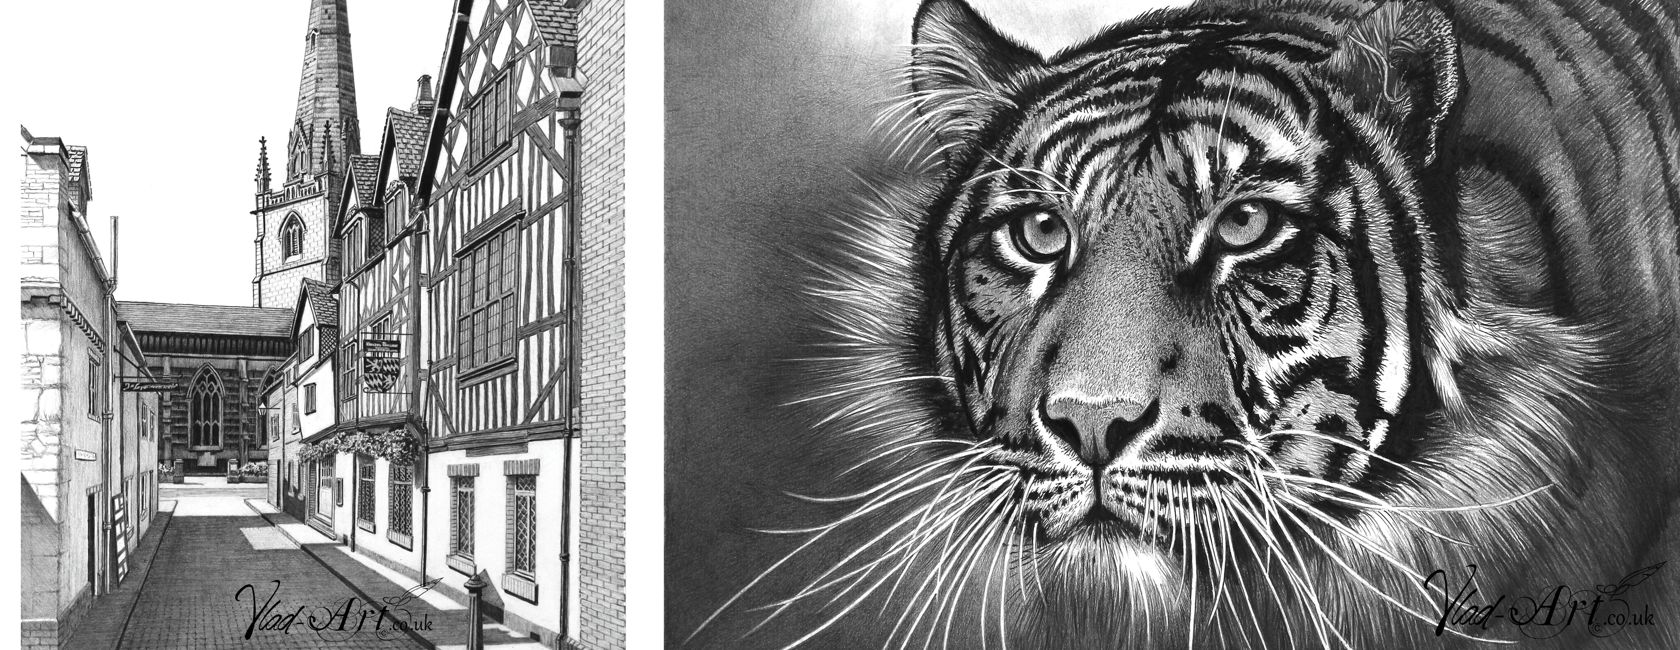 Limited Edition Pencil Drawings